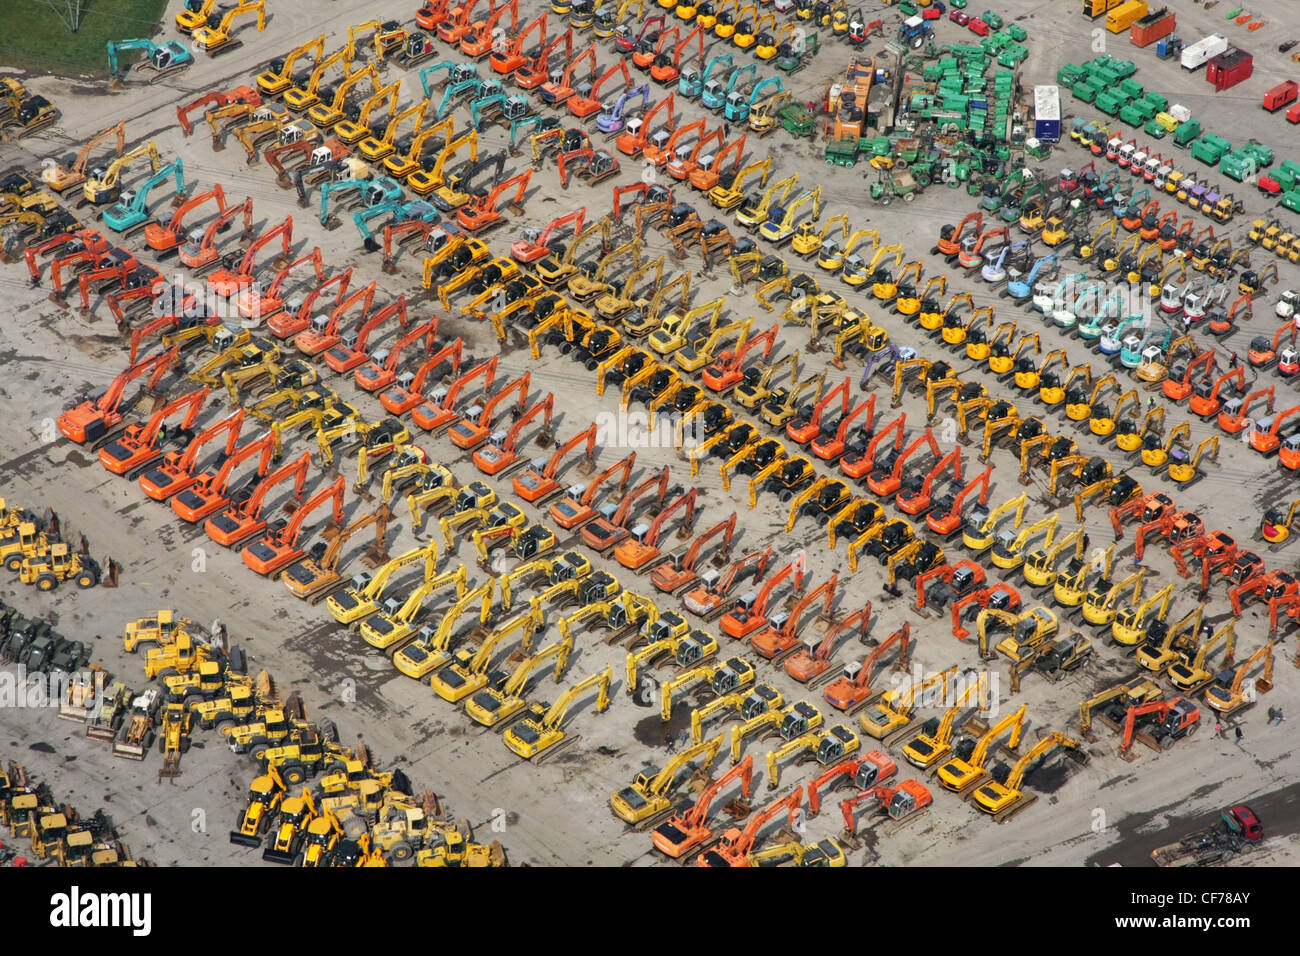 Aerial view of JCB diggers lined up for an auction sale - Stock Image